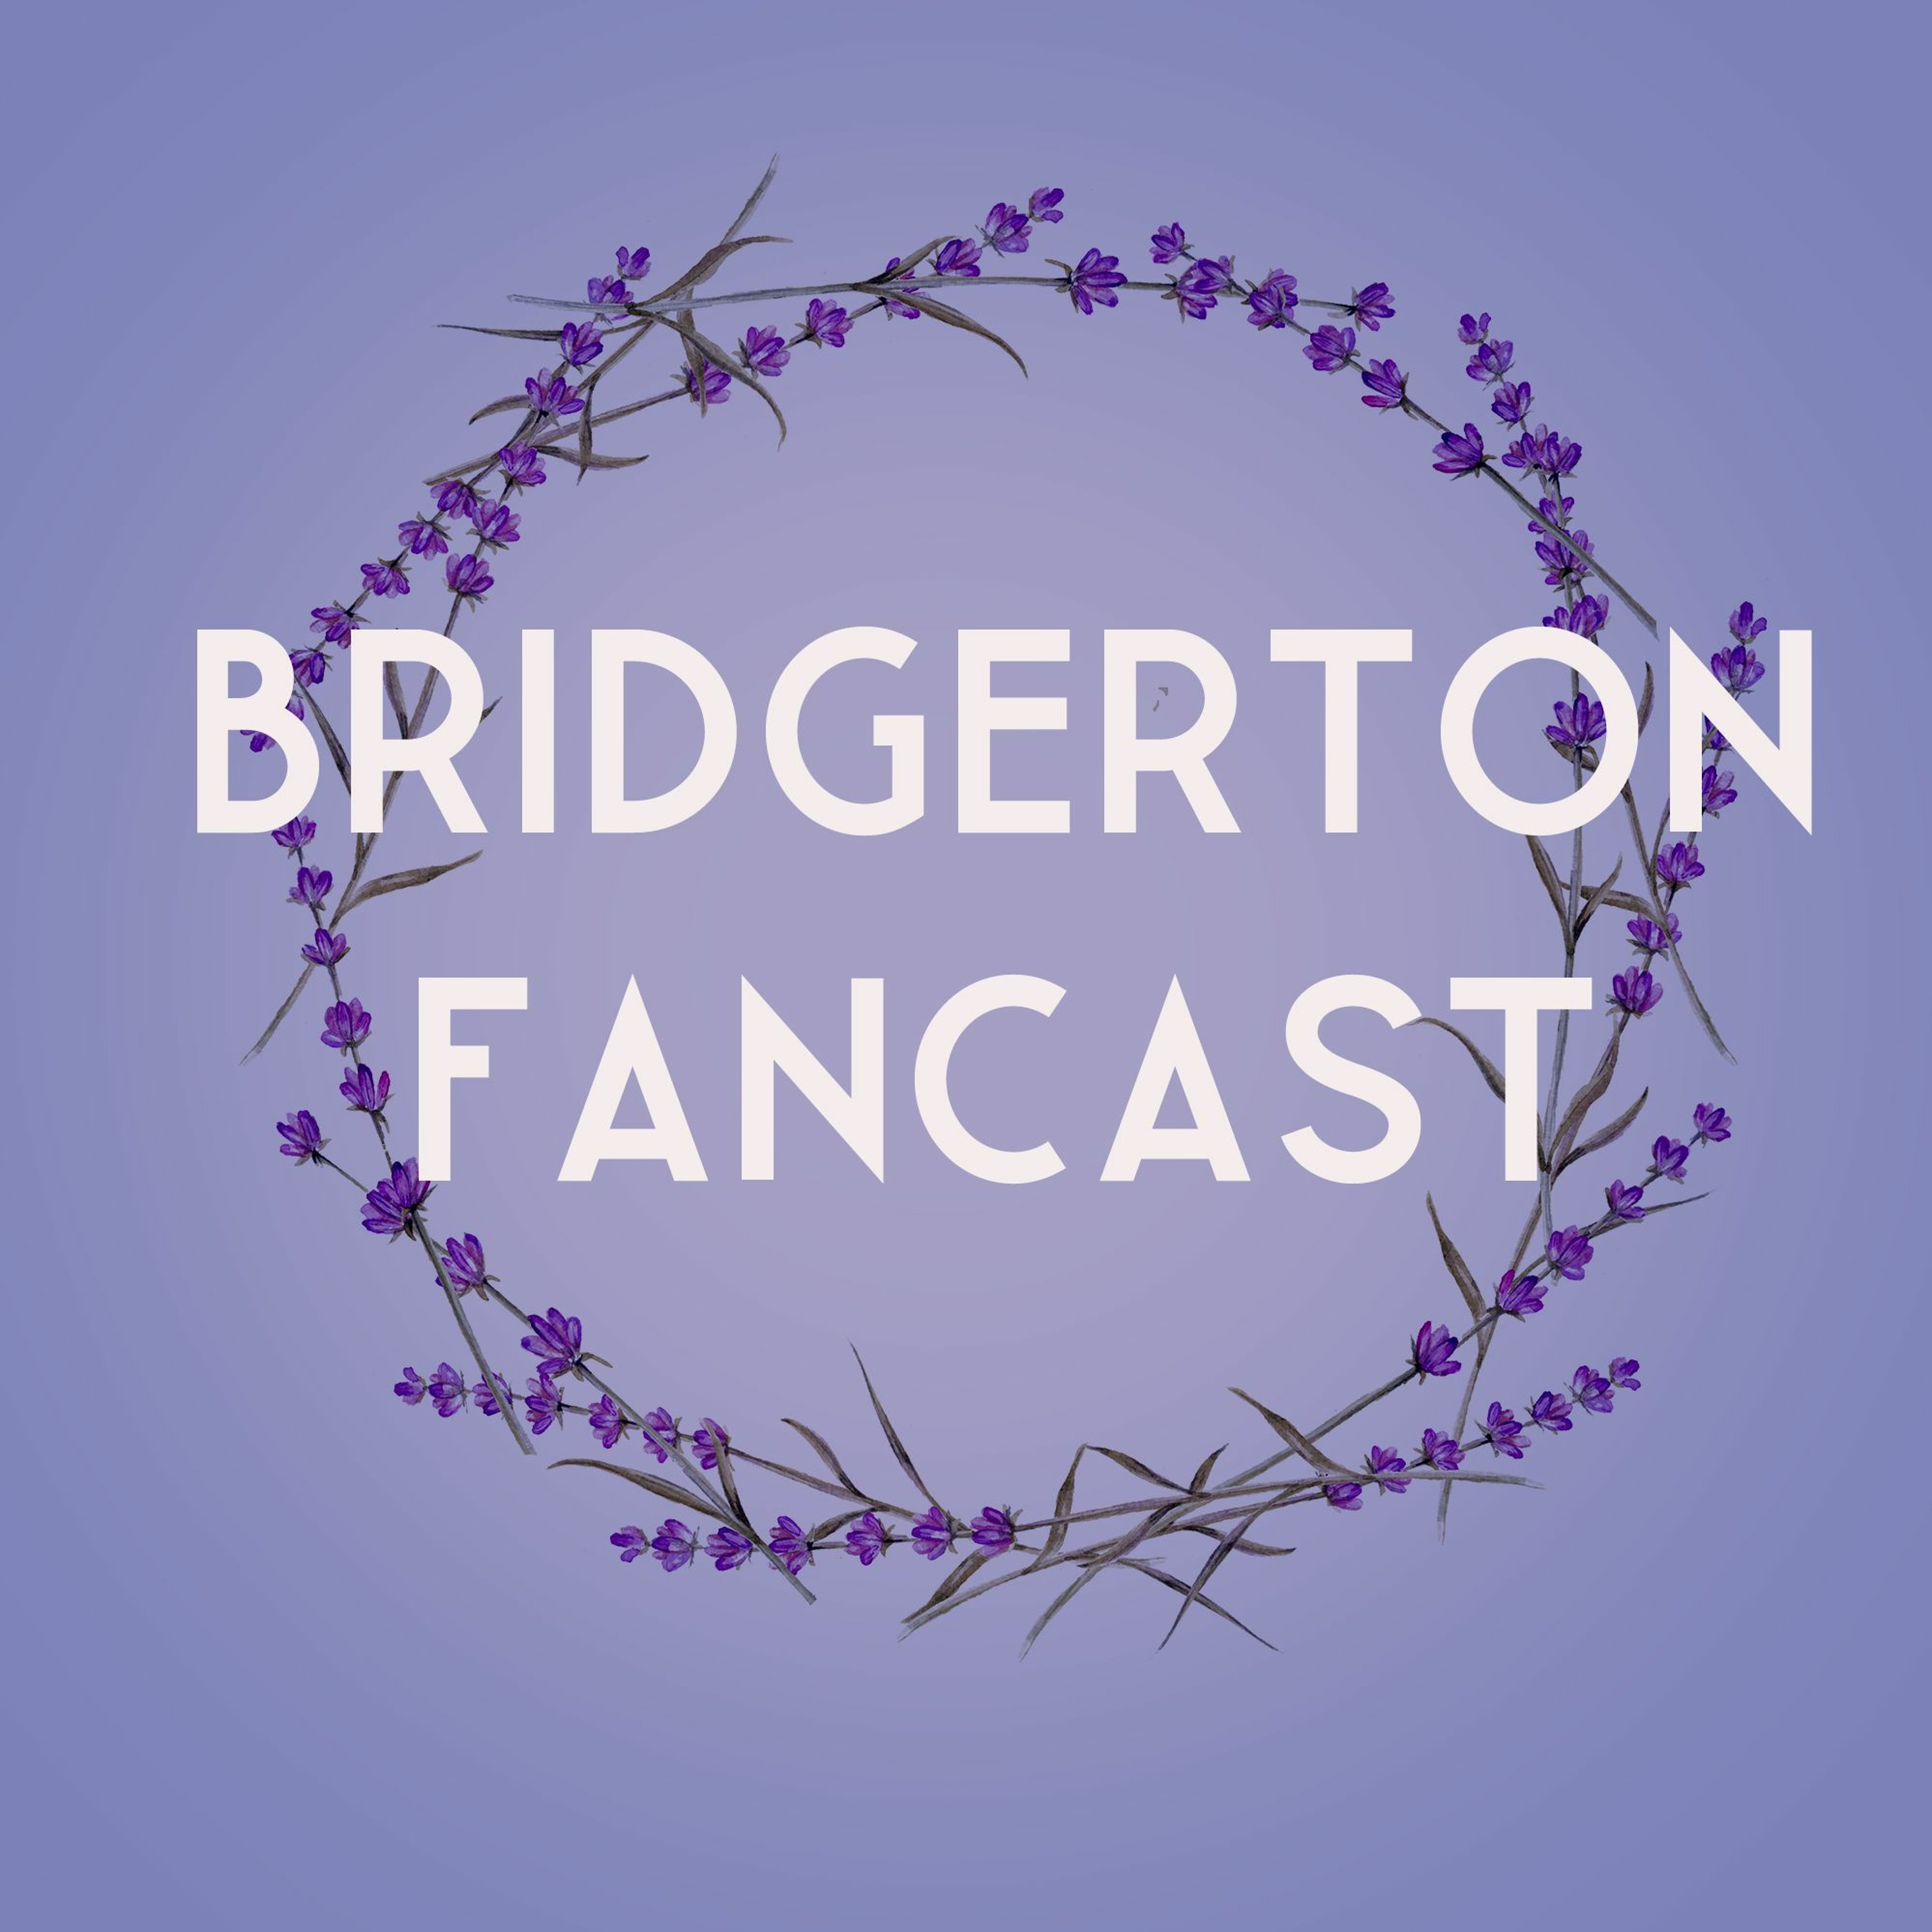 Bridgerton Fancast Episode One